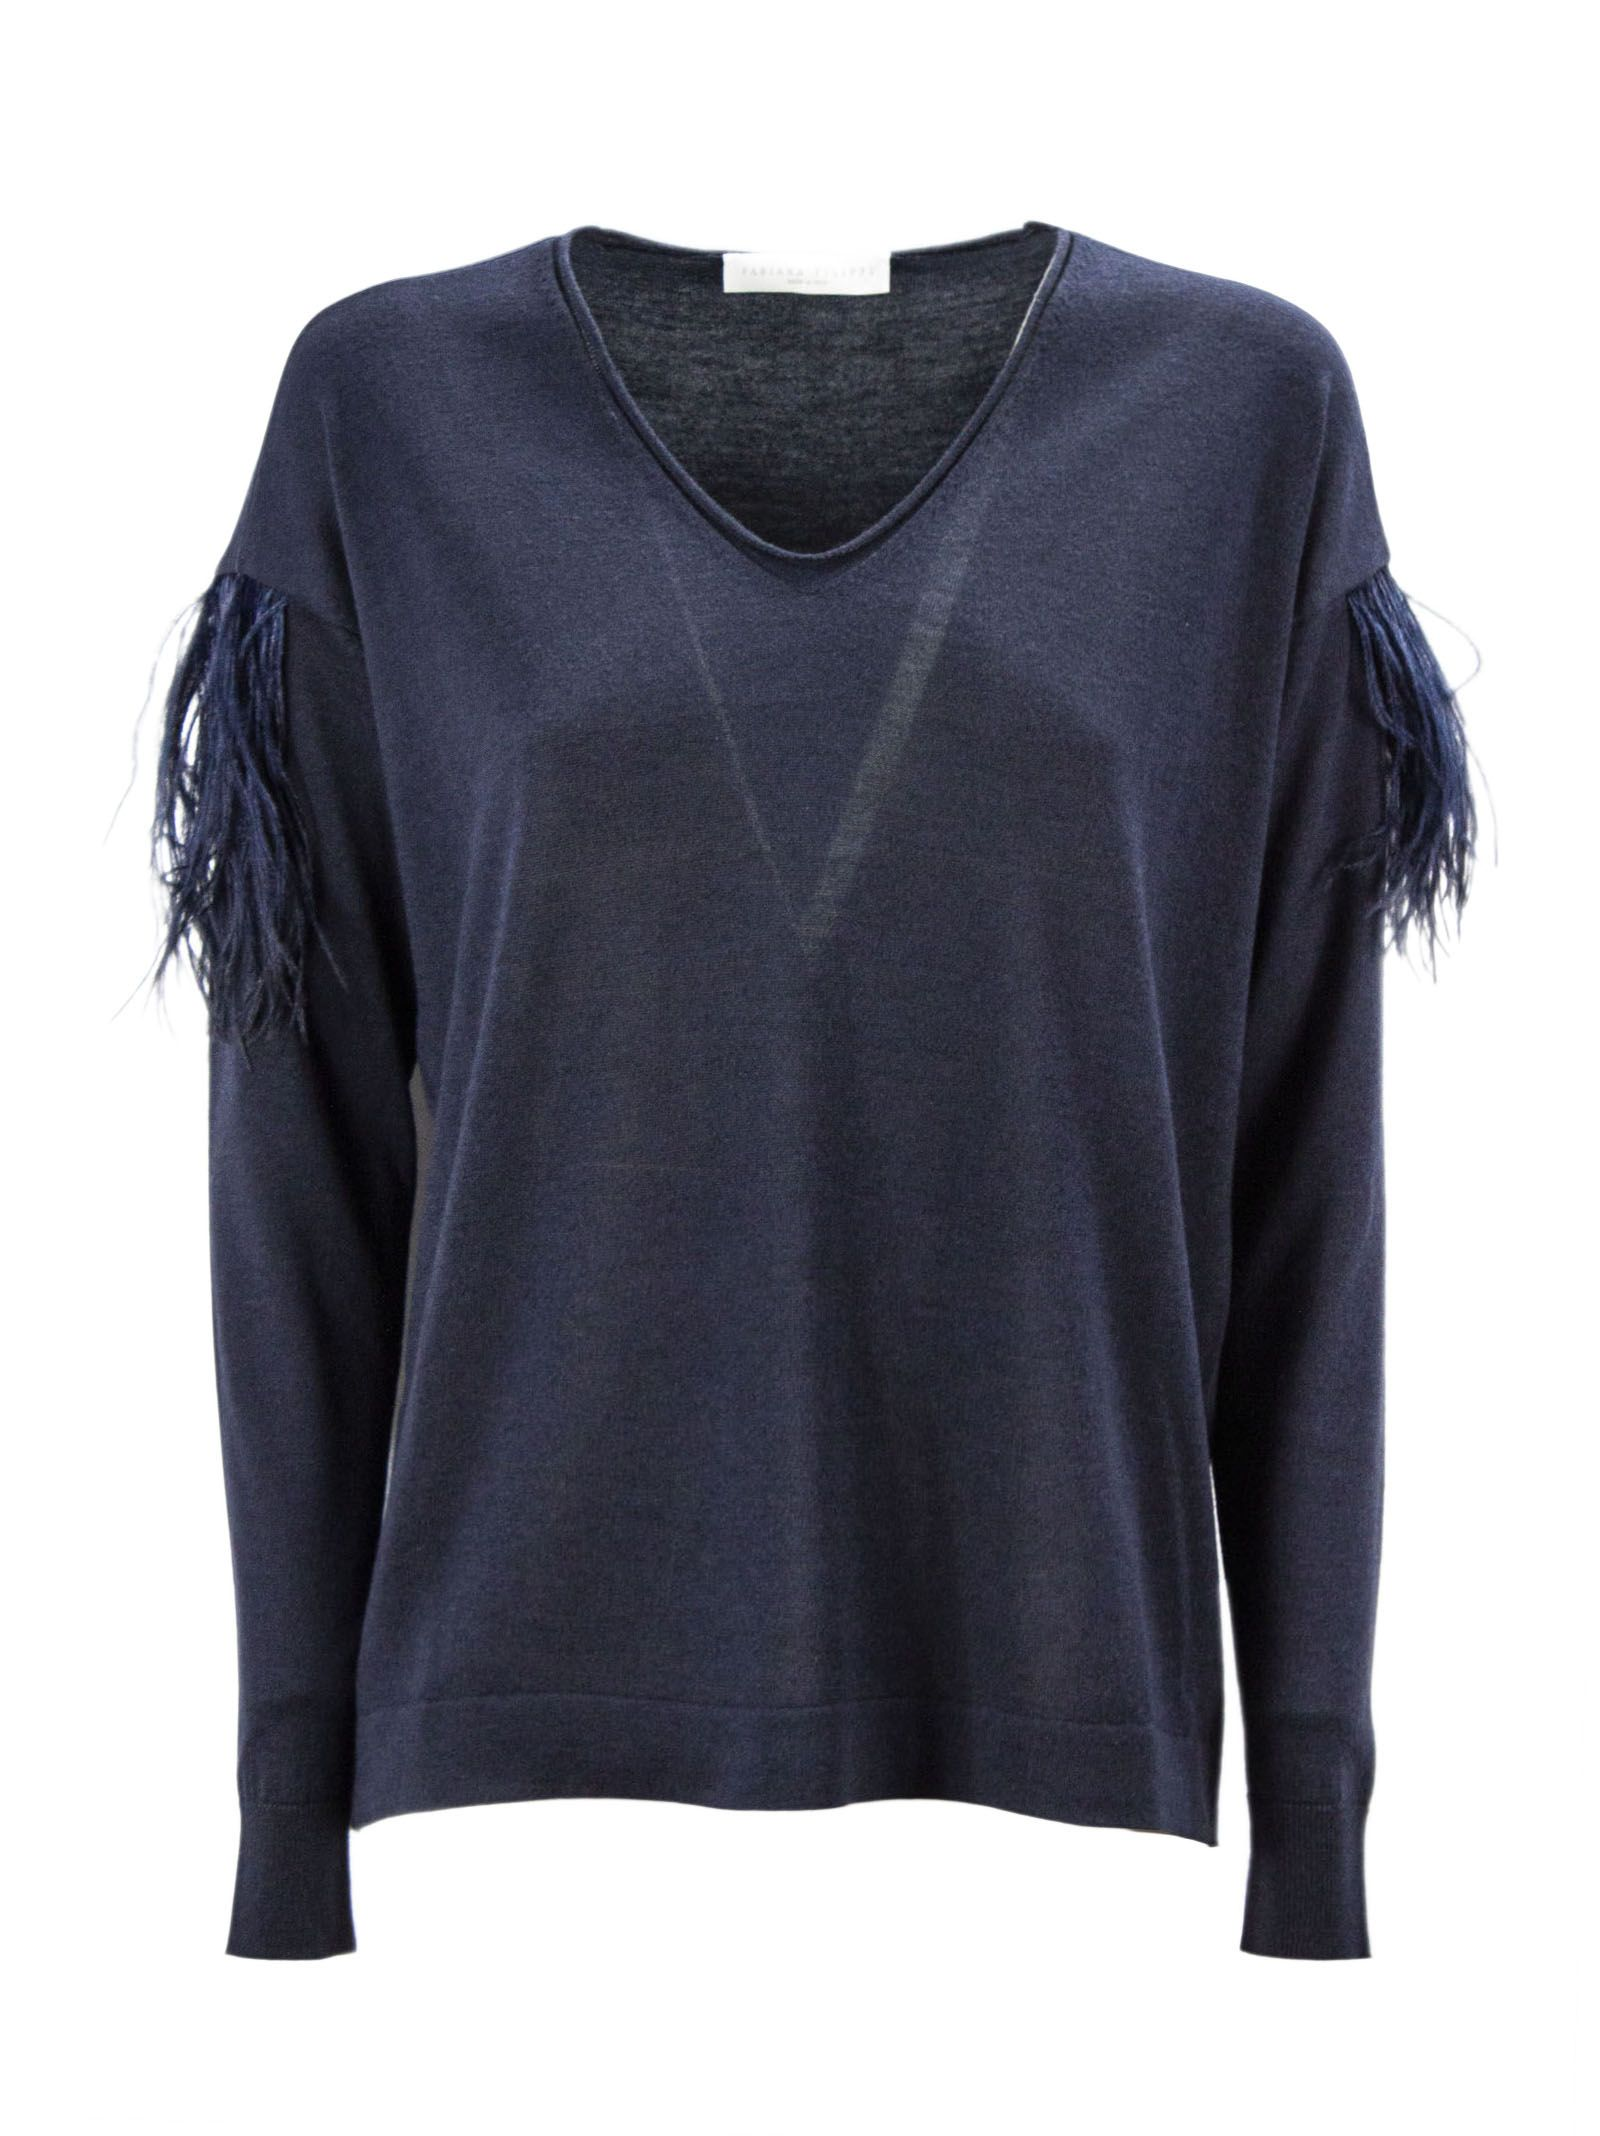 Fabiana Filippi Blue Merino Wool Blend Sweater